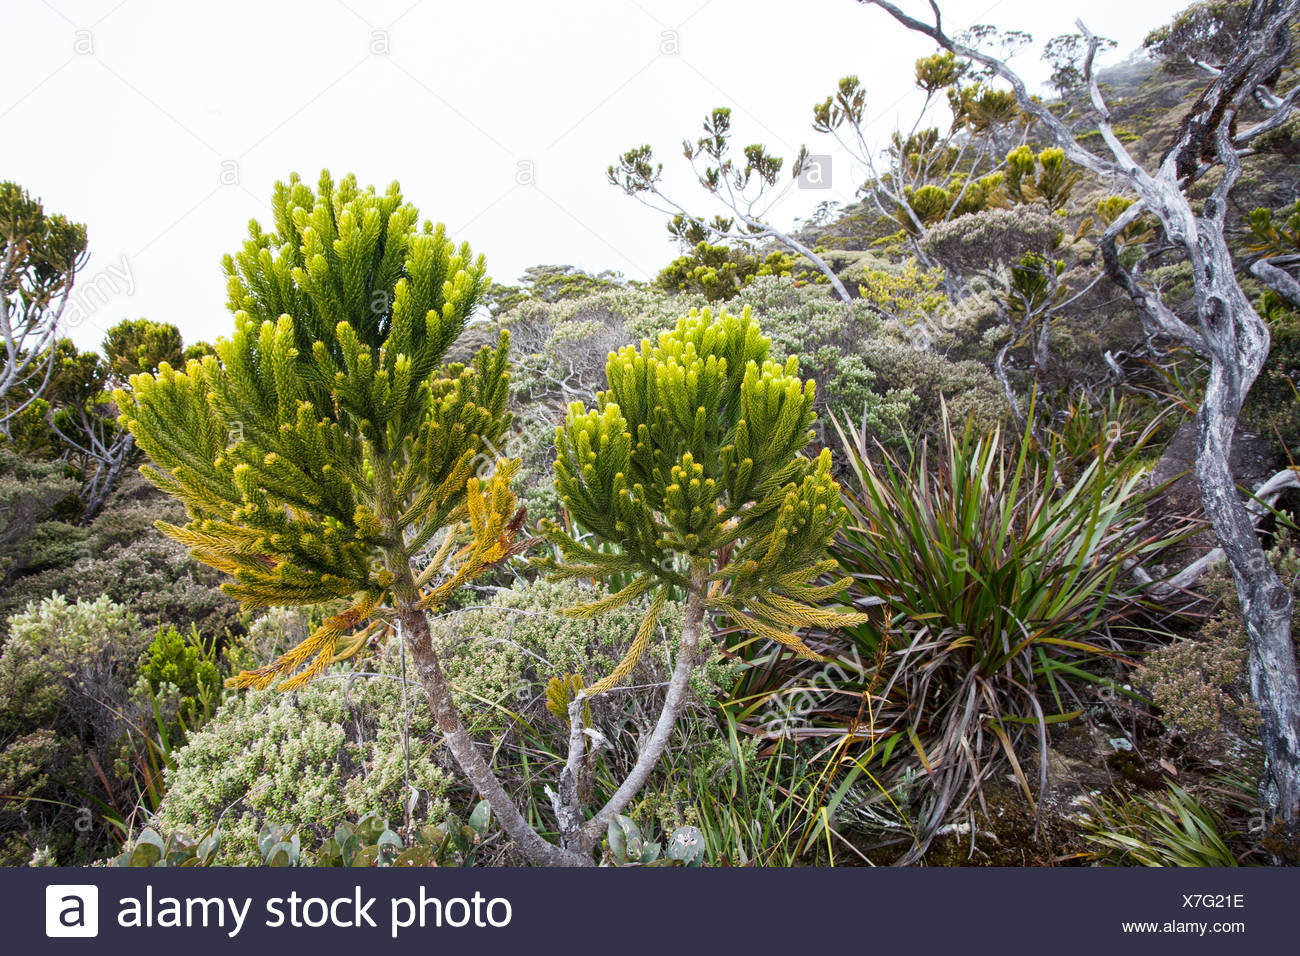 Gymnosperms grow in the high altitude areas of Mount Kinabalu. - Stock Image